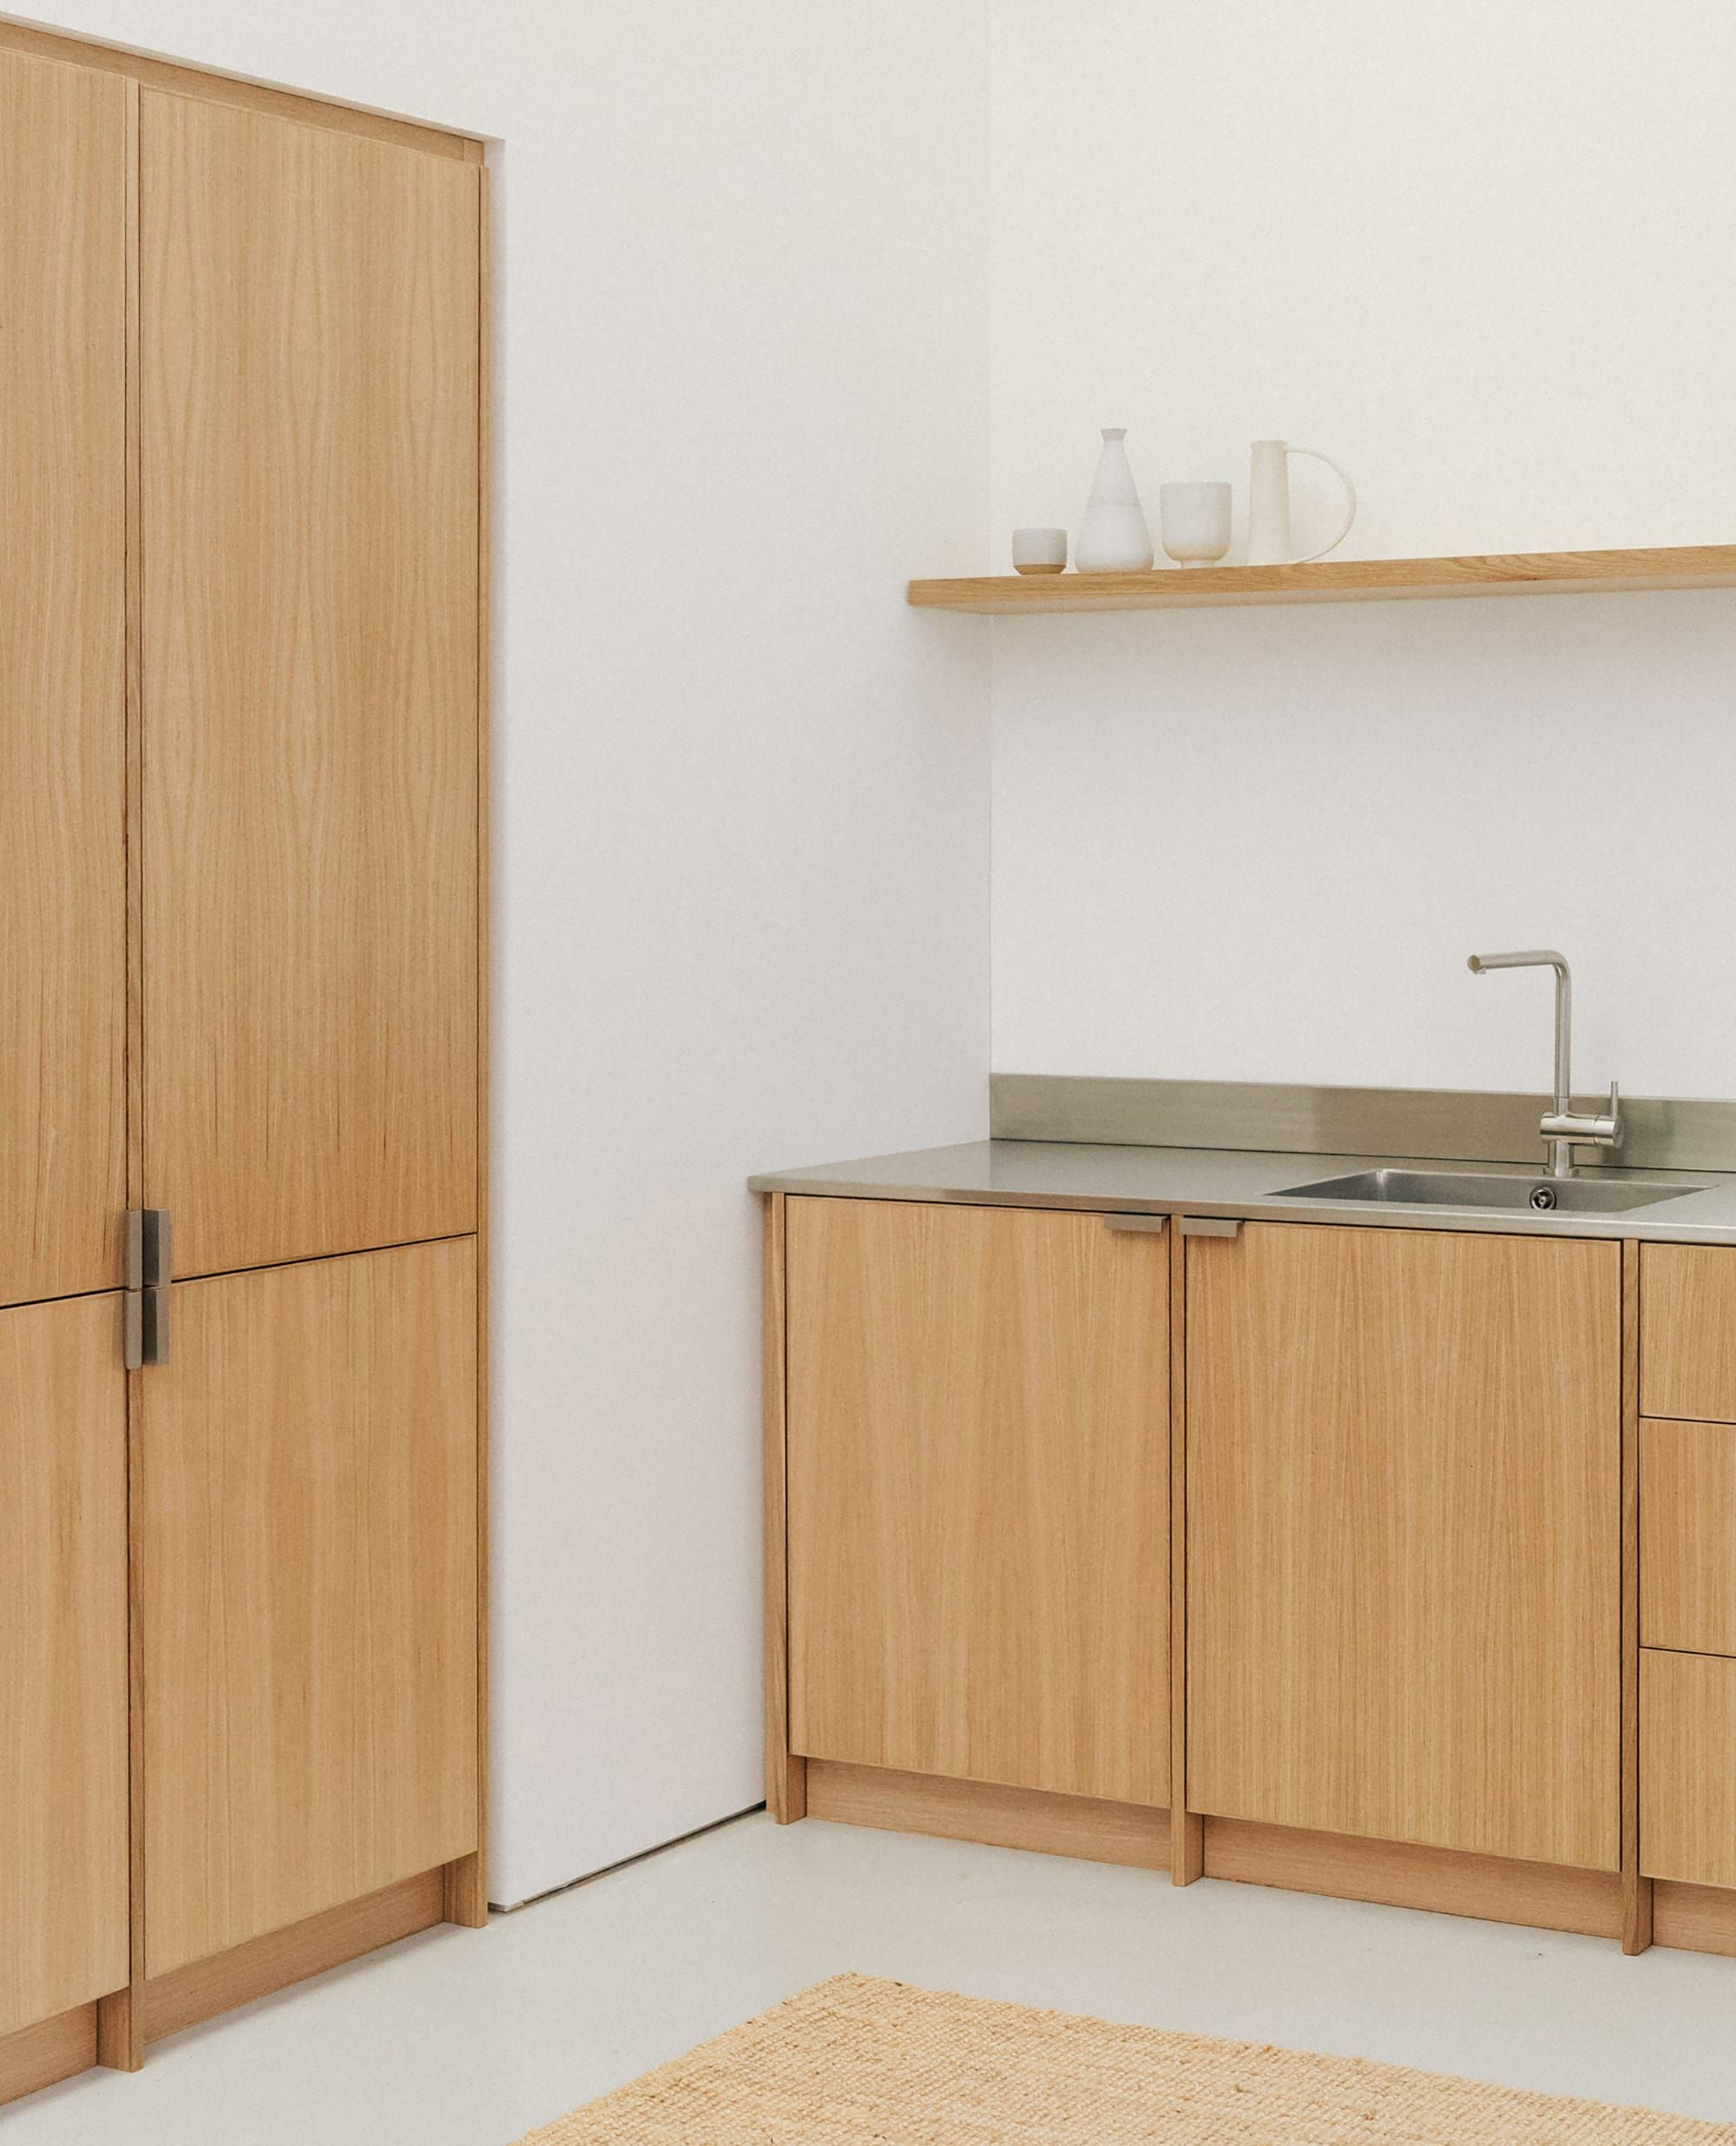 From Kitchens oak and stainless steel kitchen.